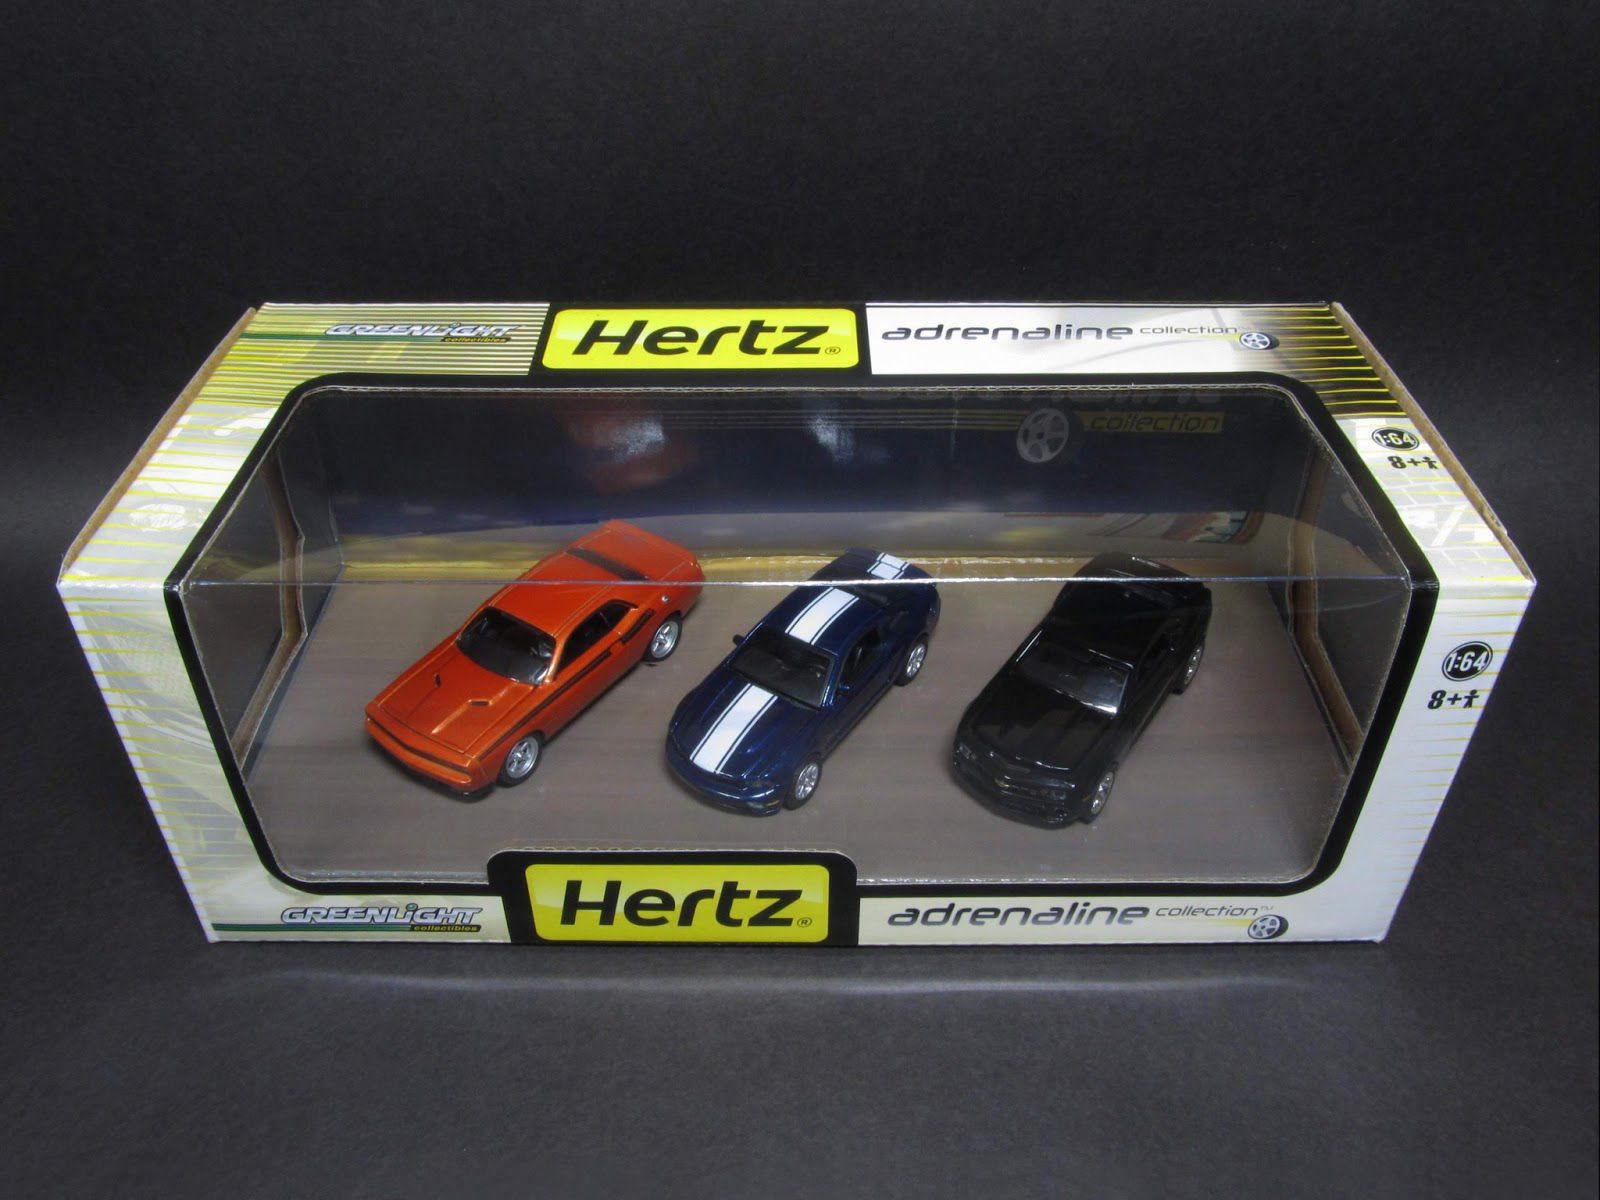 Hertz adrenaline collection -  - 242355 - R6